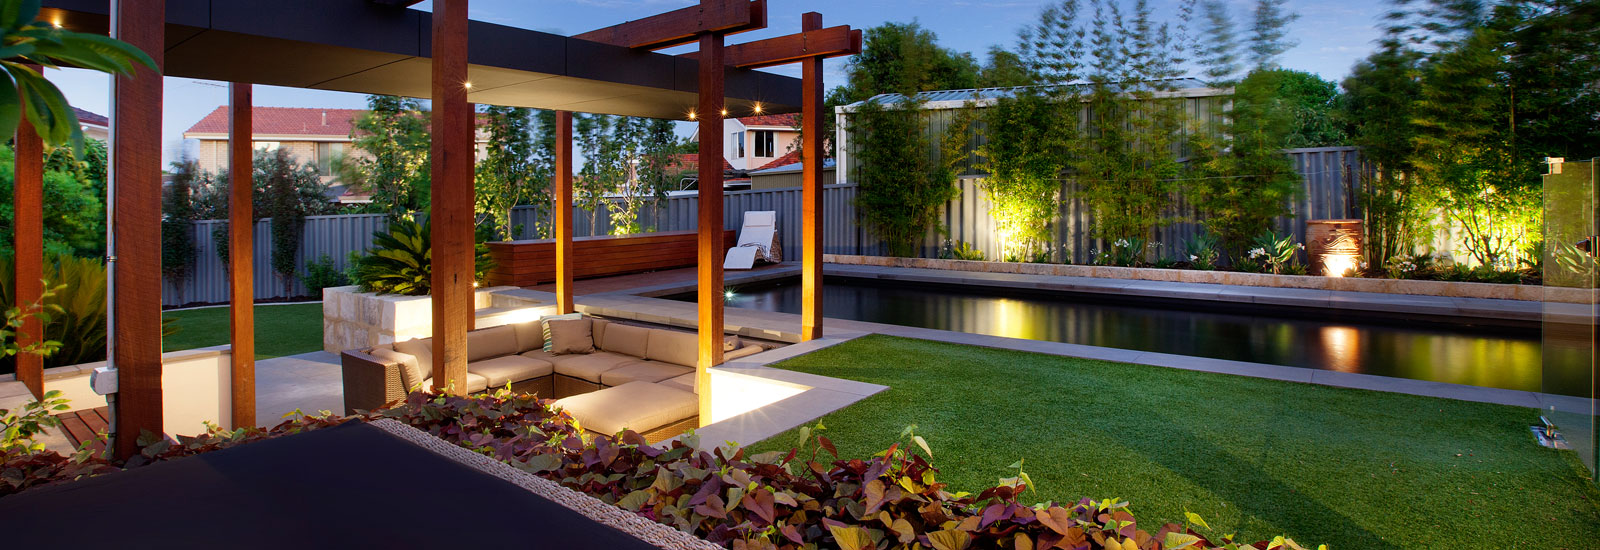 Landscaping and Design Gold Coast